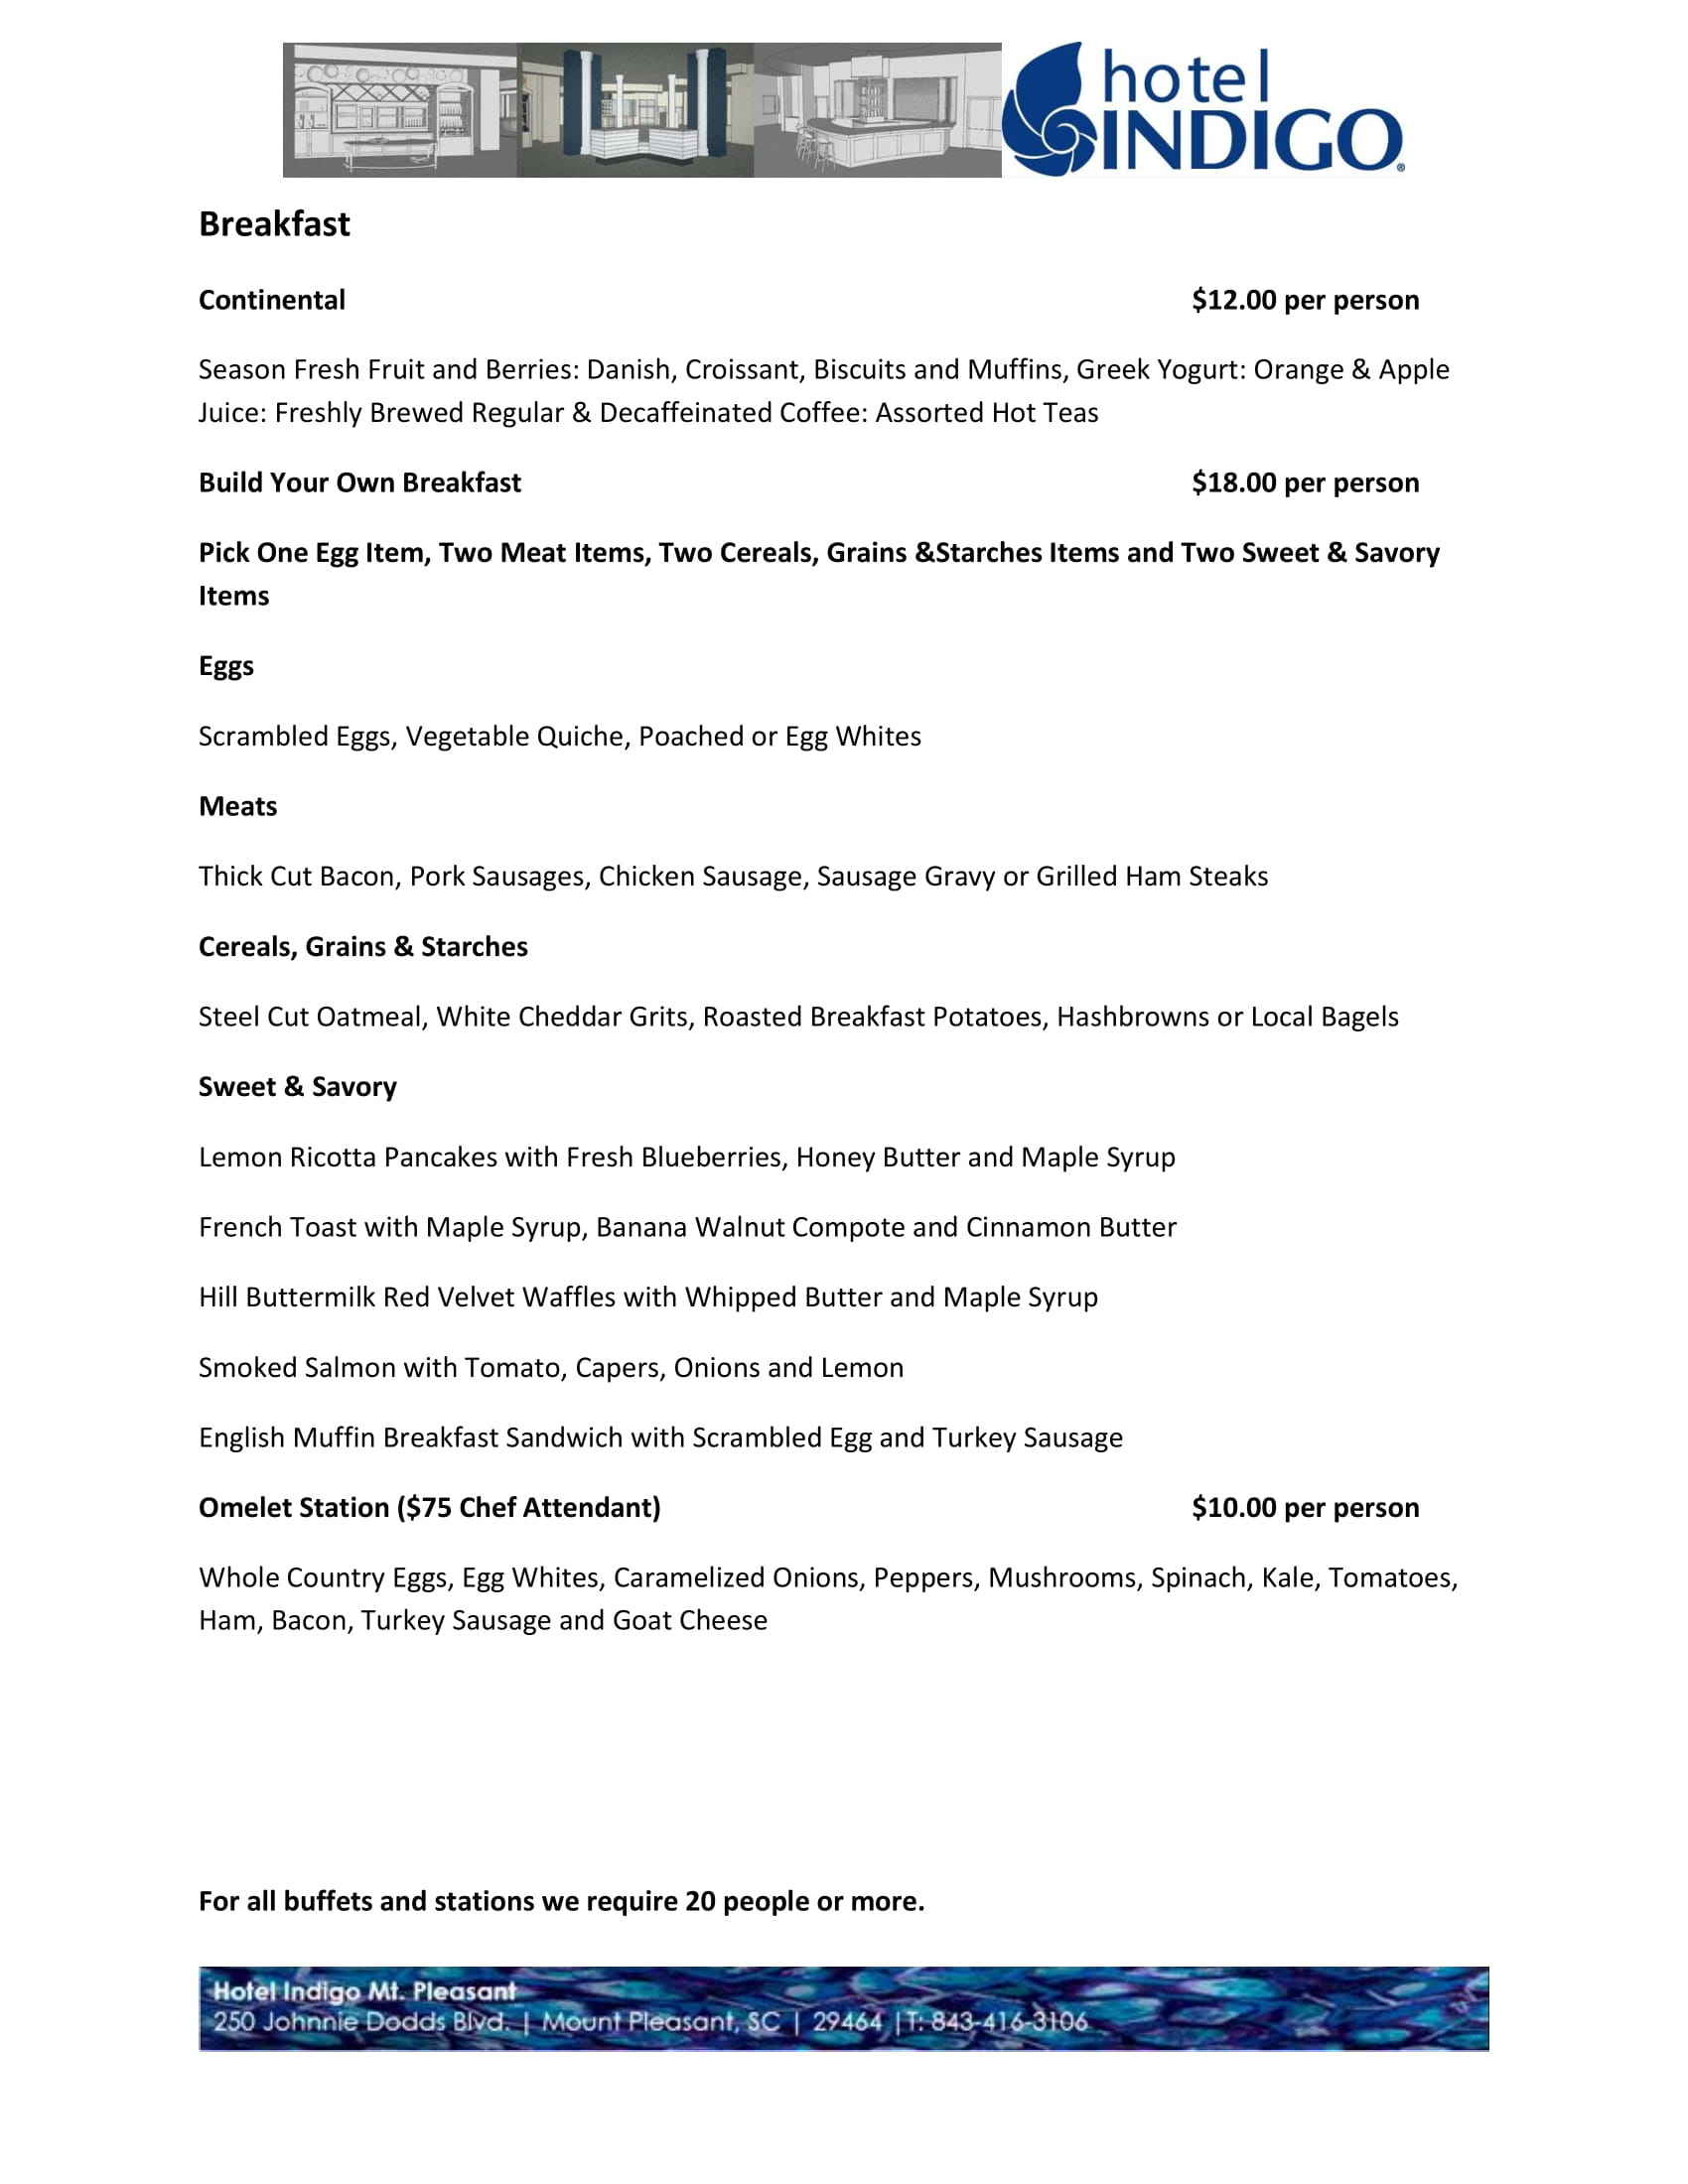 hotel indigo mount pleasant catering menu